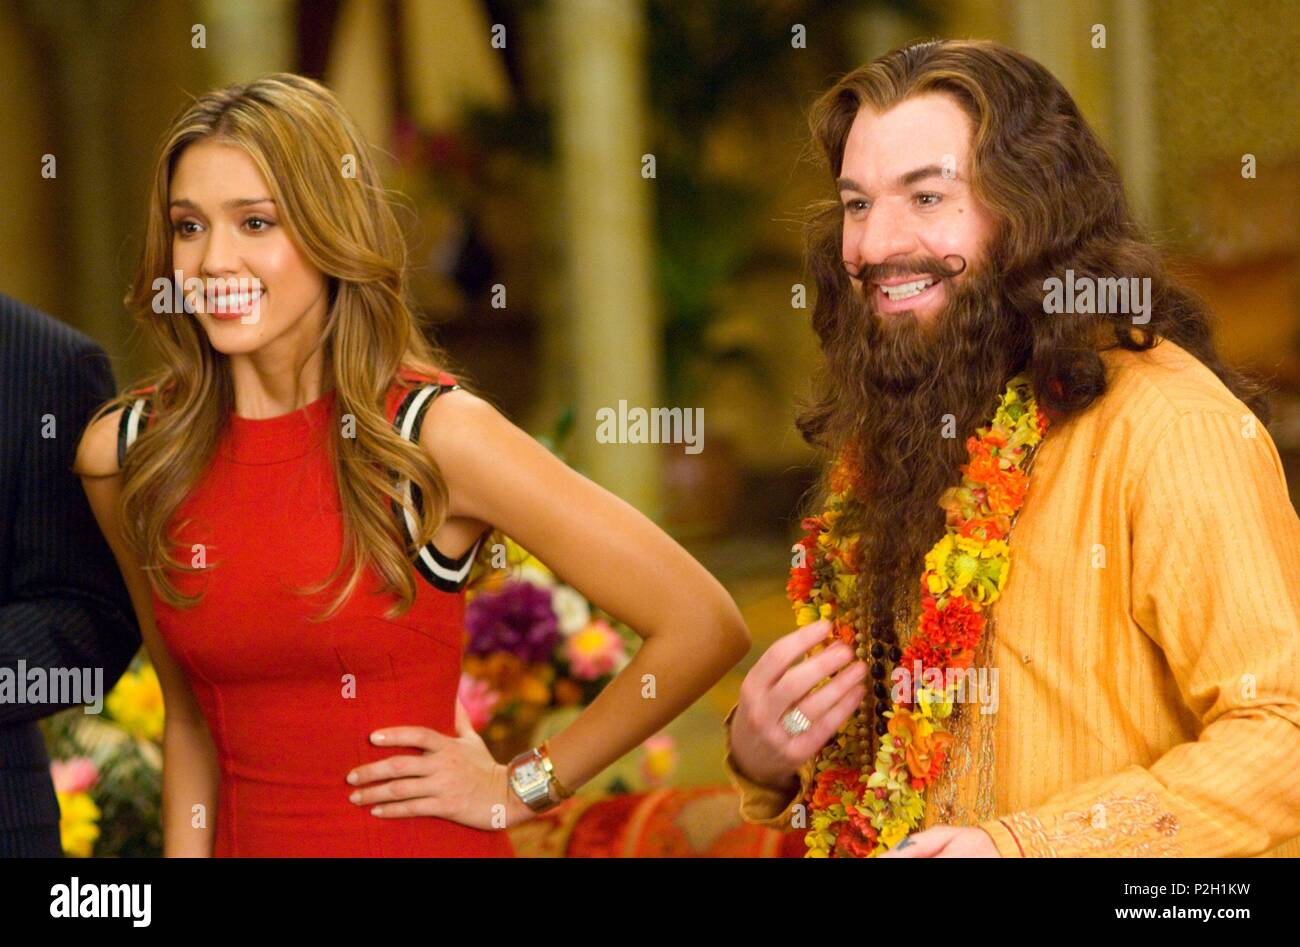 Original Film Title THE LOVE GURU English Director MARCO SCHNABEL Year 2008 Stars MIKE MYERS JESSICA ALBA